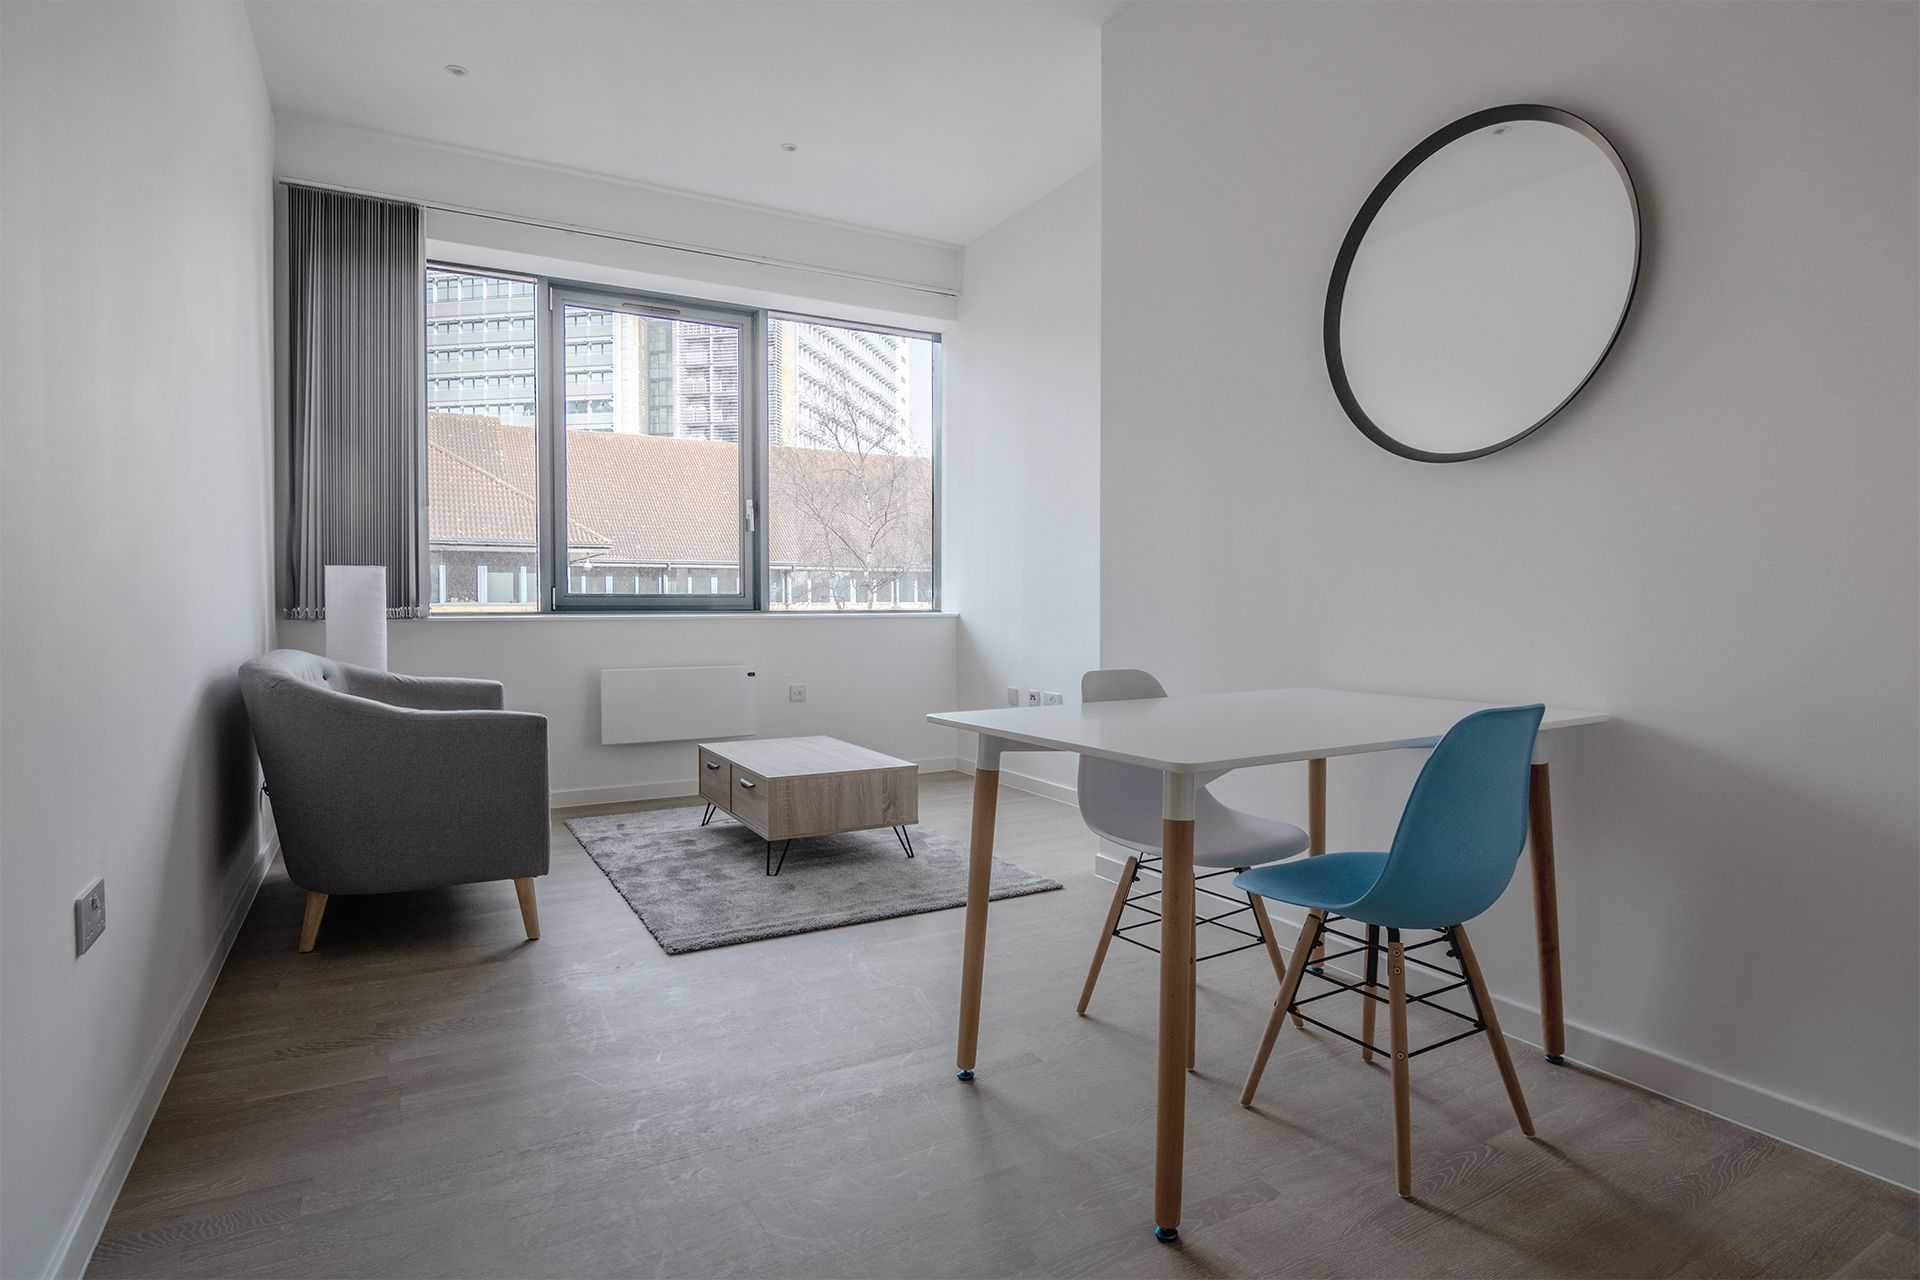 1 Bedroom apartment to rent in London VIL-ST-0007